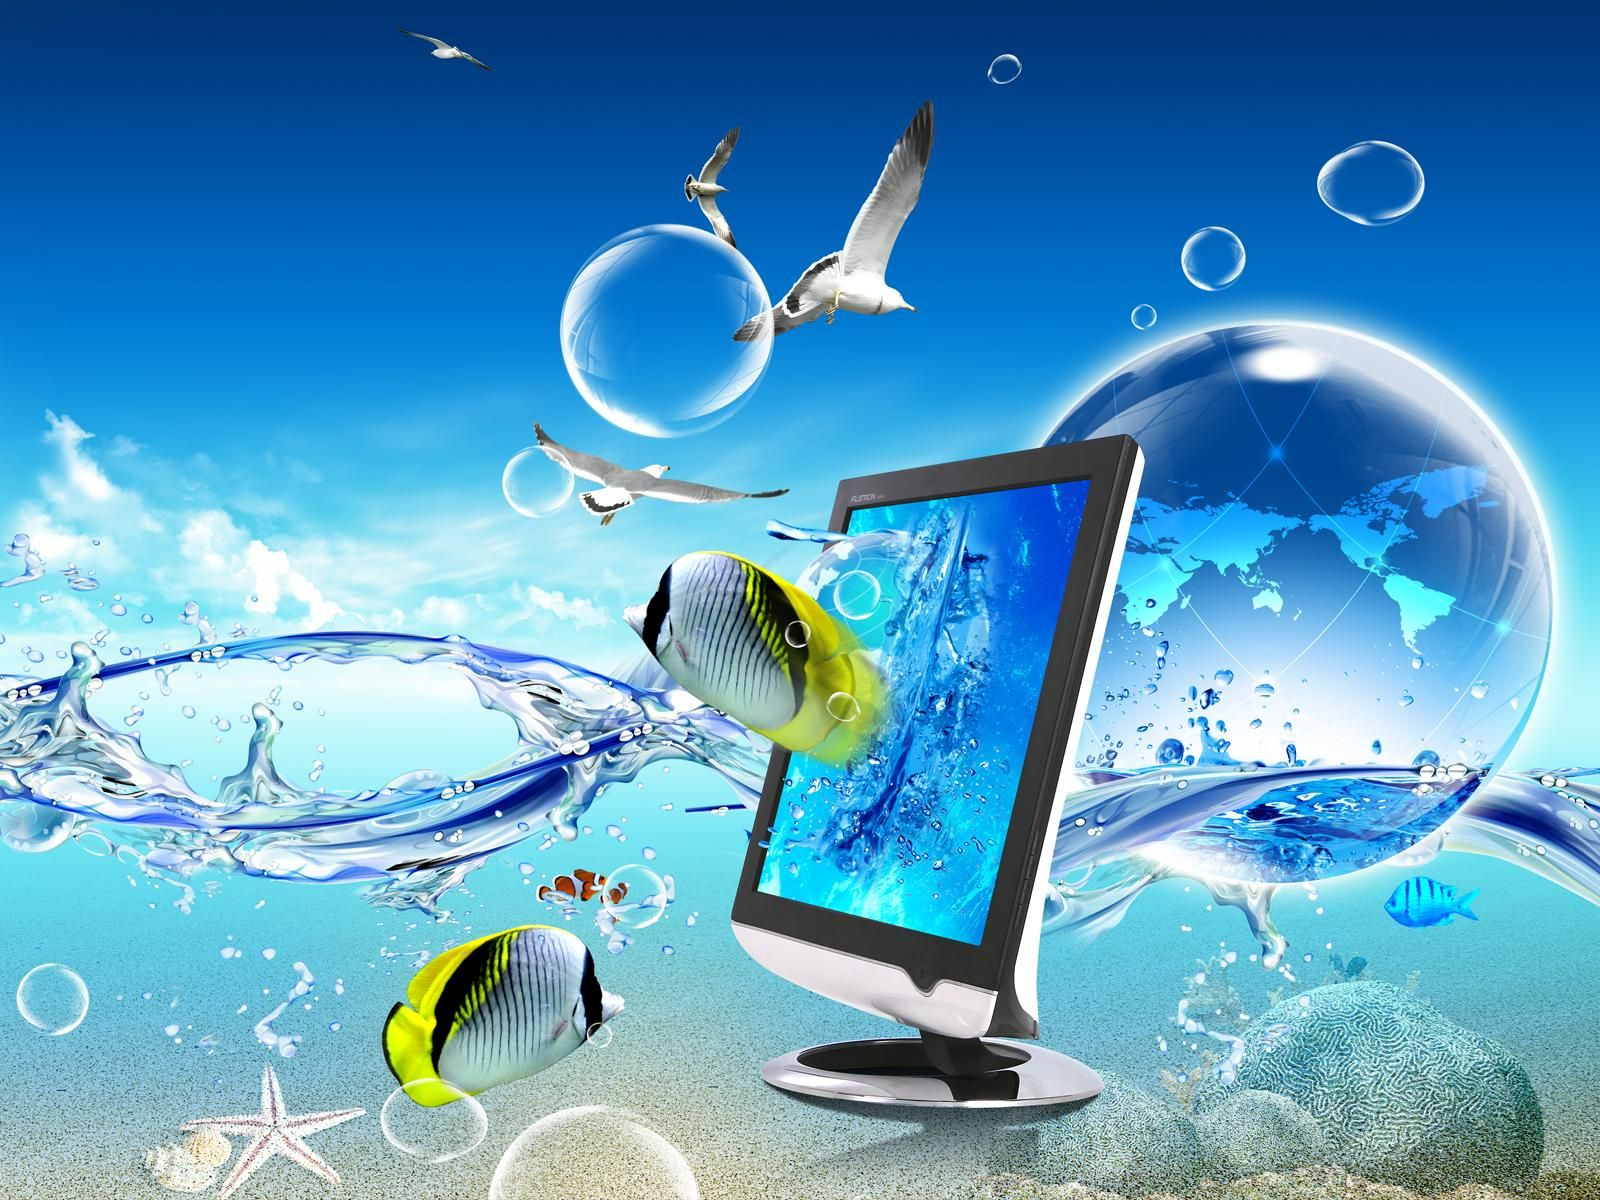 Live wallpapers for pc   HD Beautiful Desktop Wallpapers 1600x1200